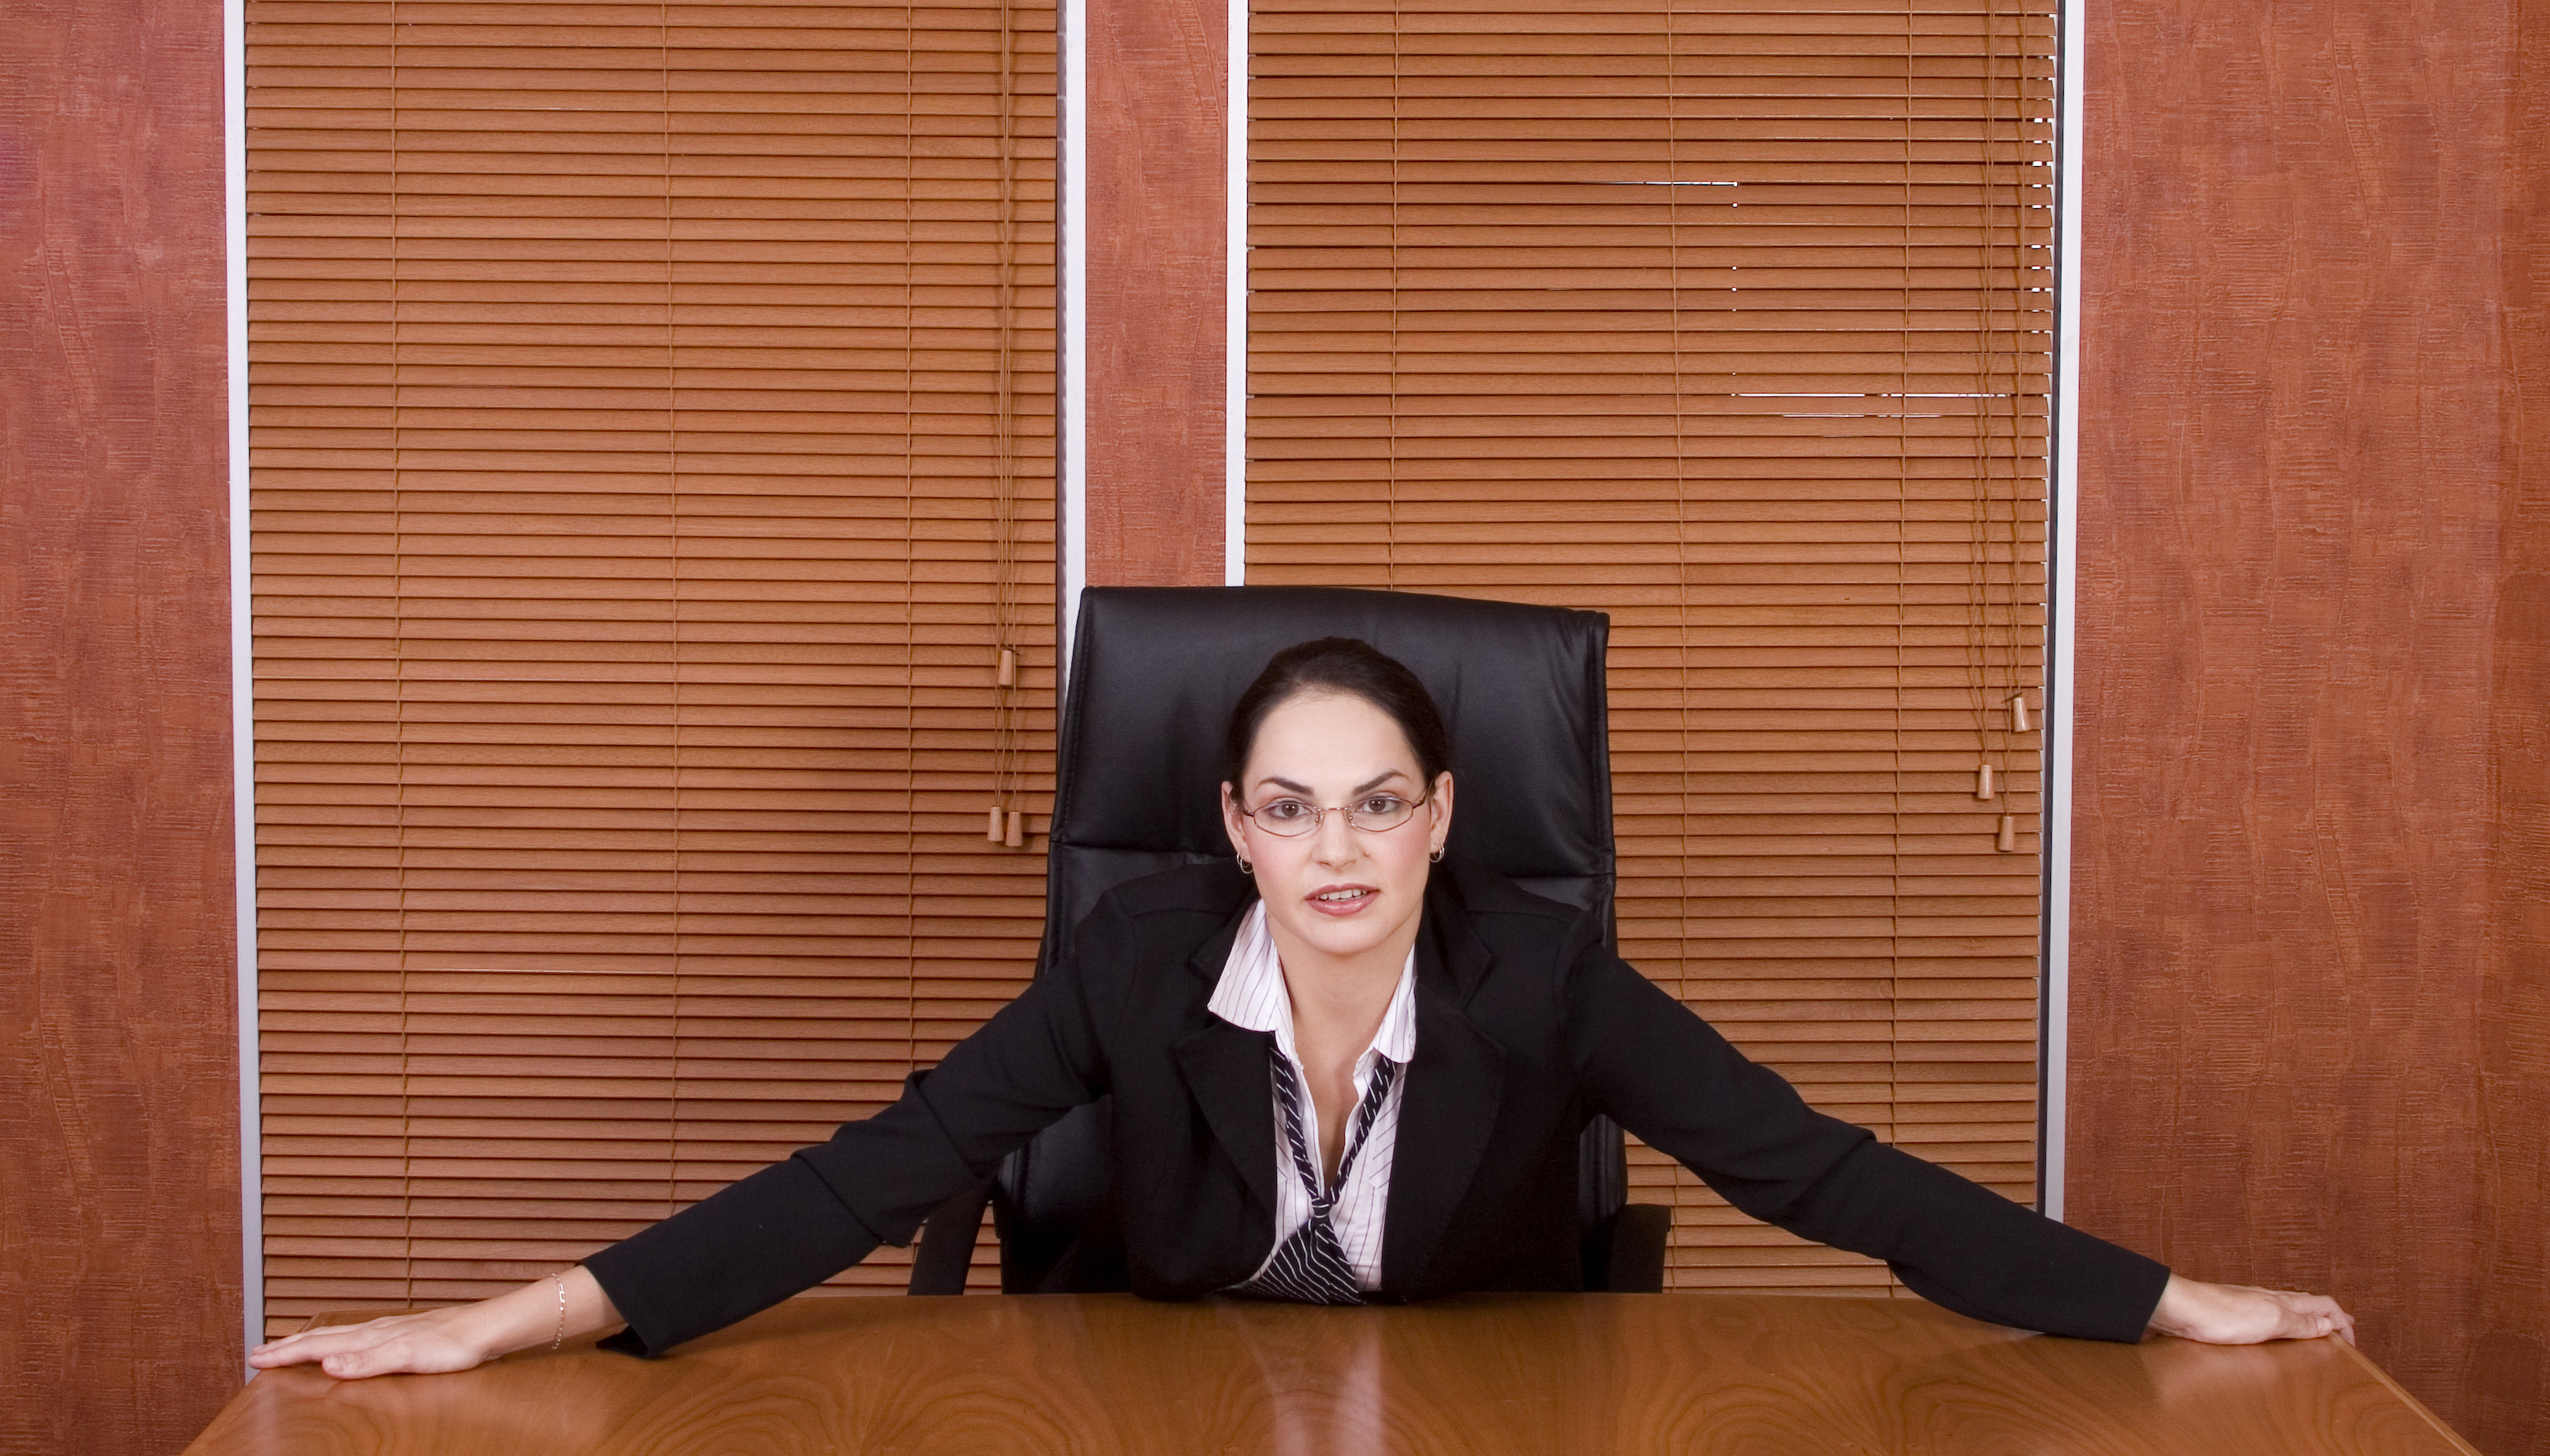 Business woman holding table